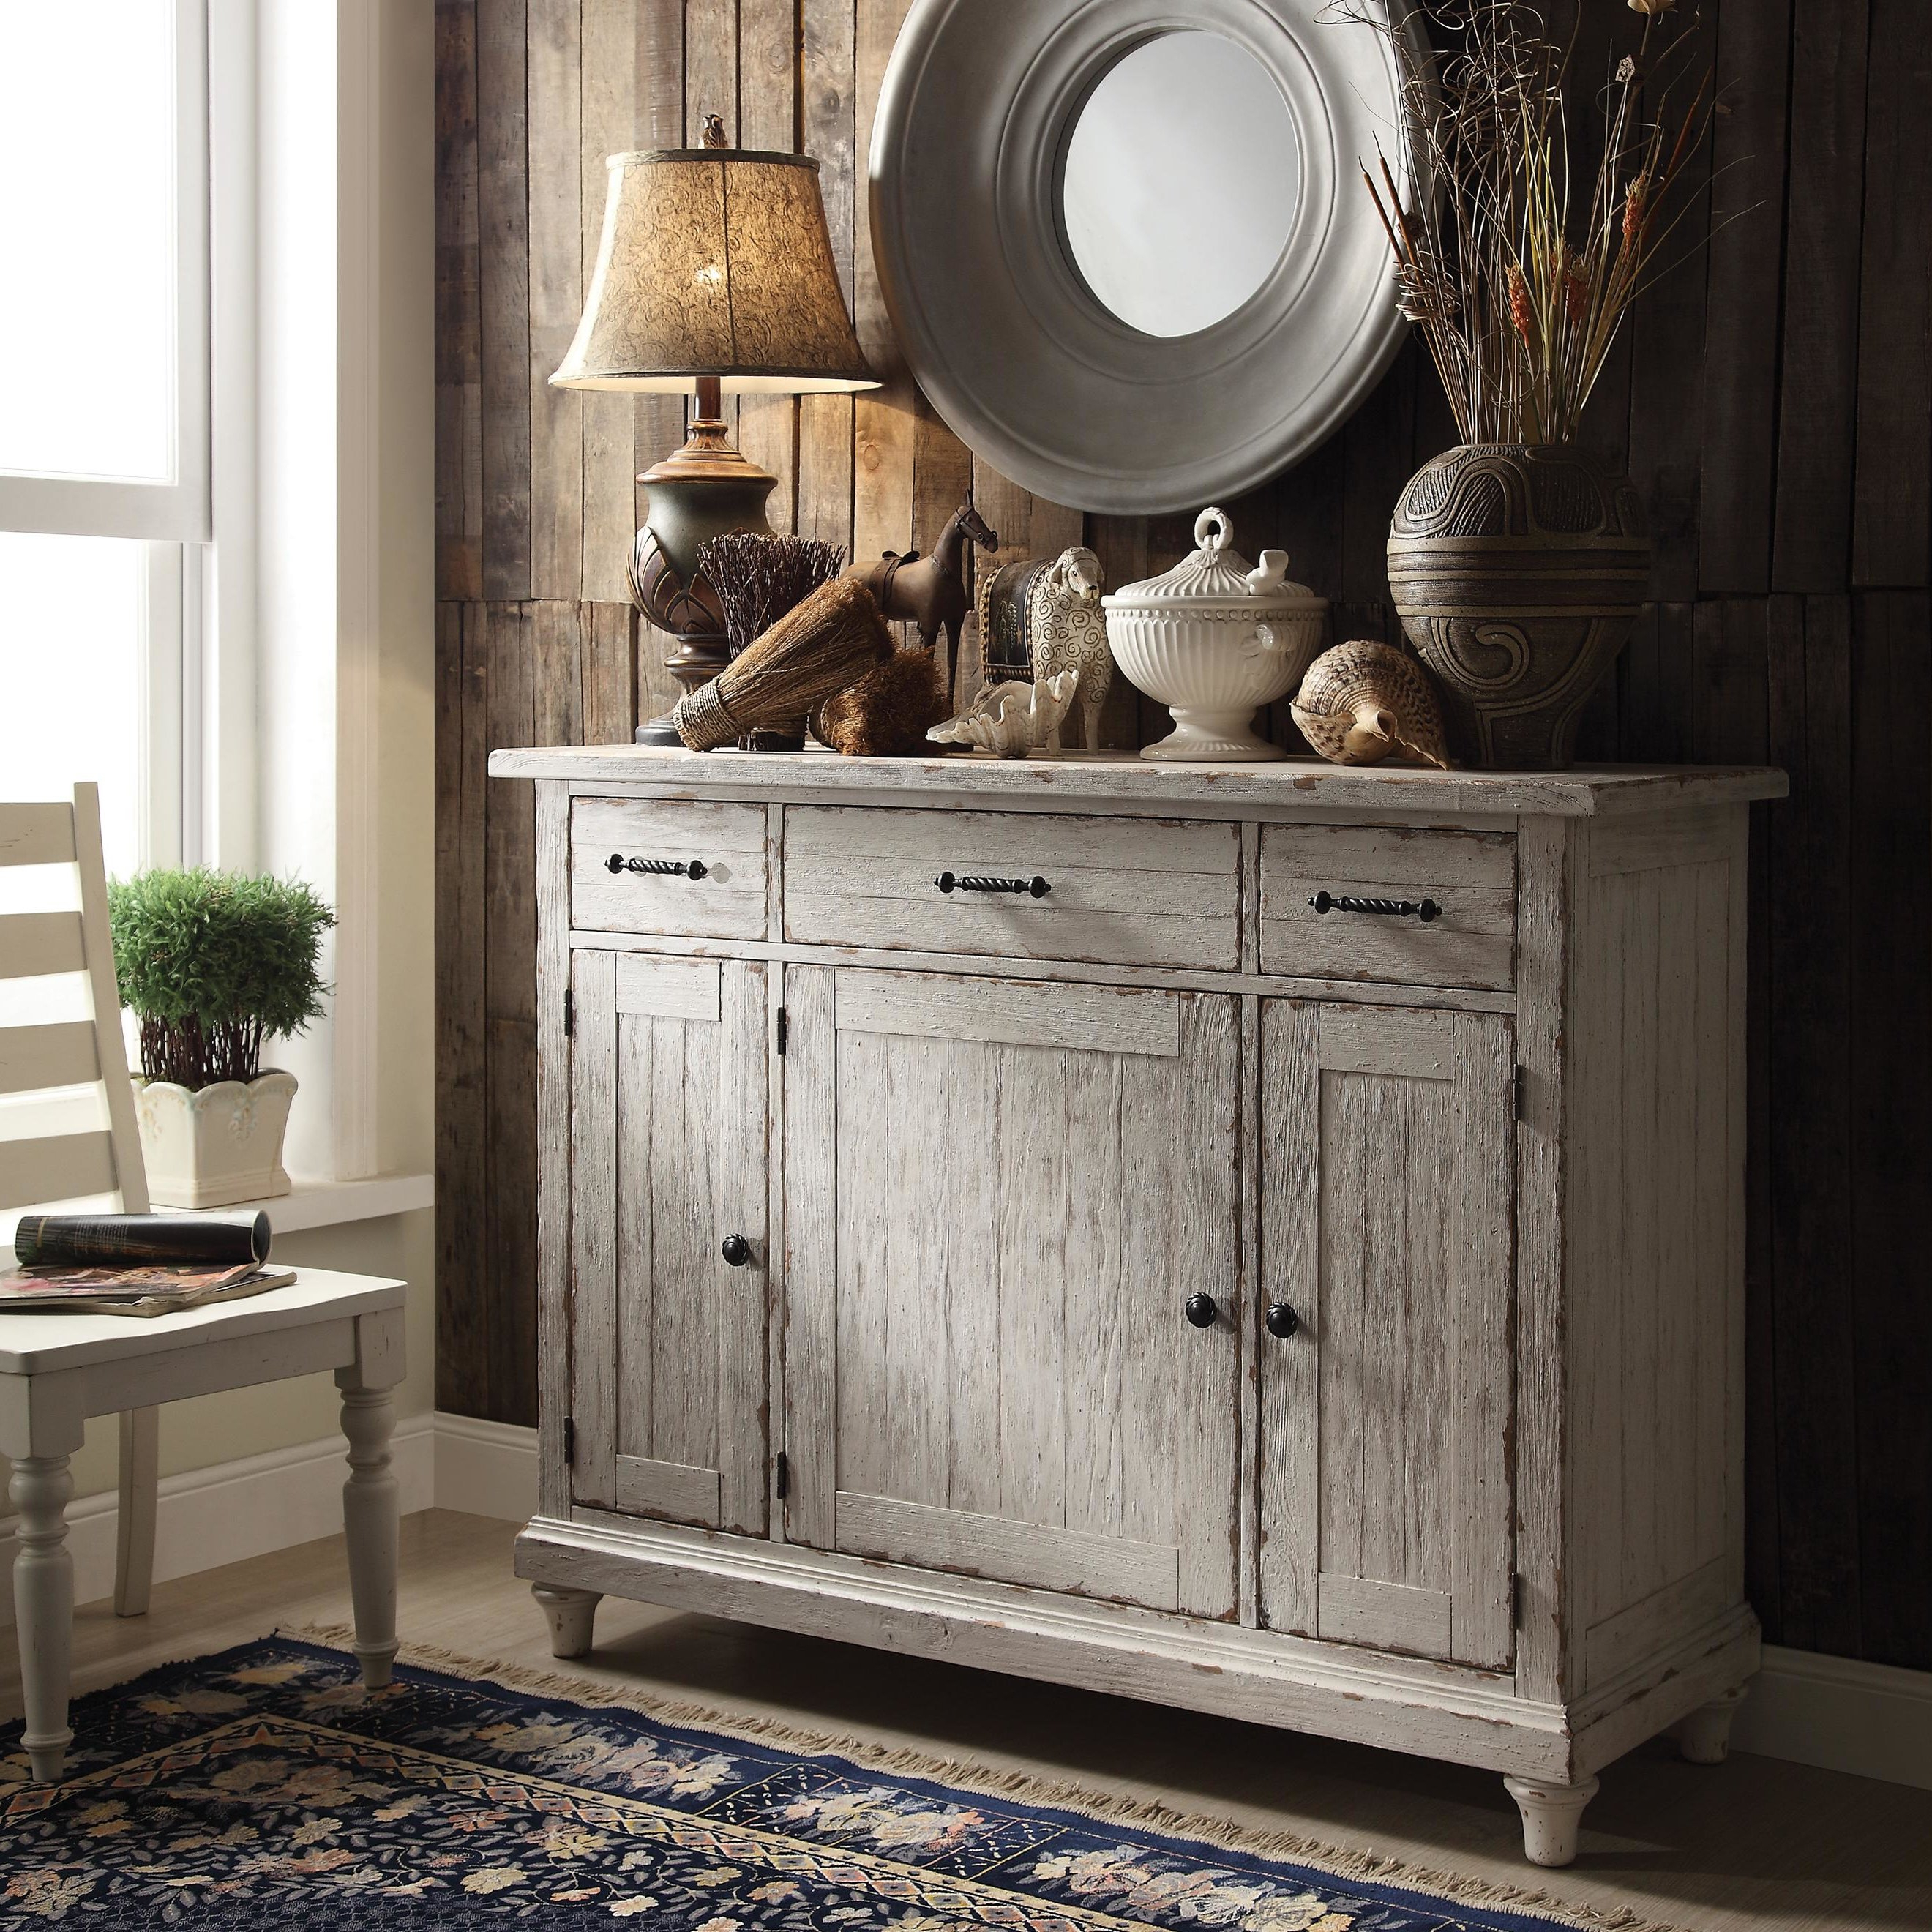 Farmhouse & Rustic Sideboards & Buffets | Birch Lane Intended For Payton Serving Sideboards (View 18 of 20)